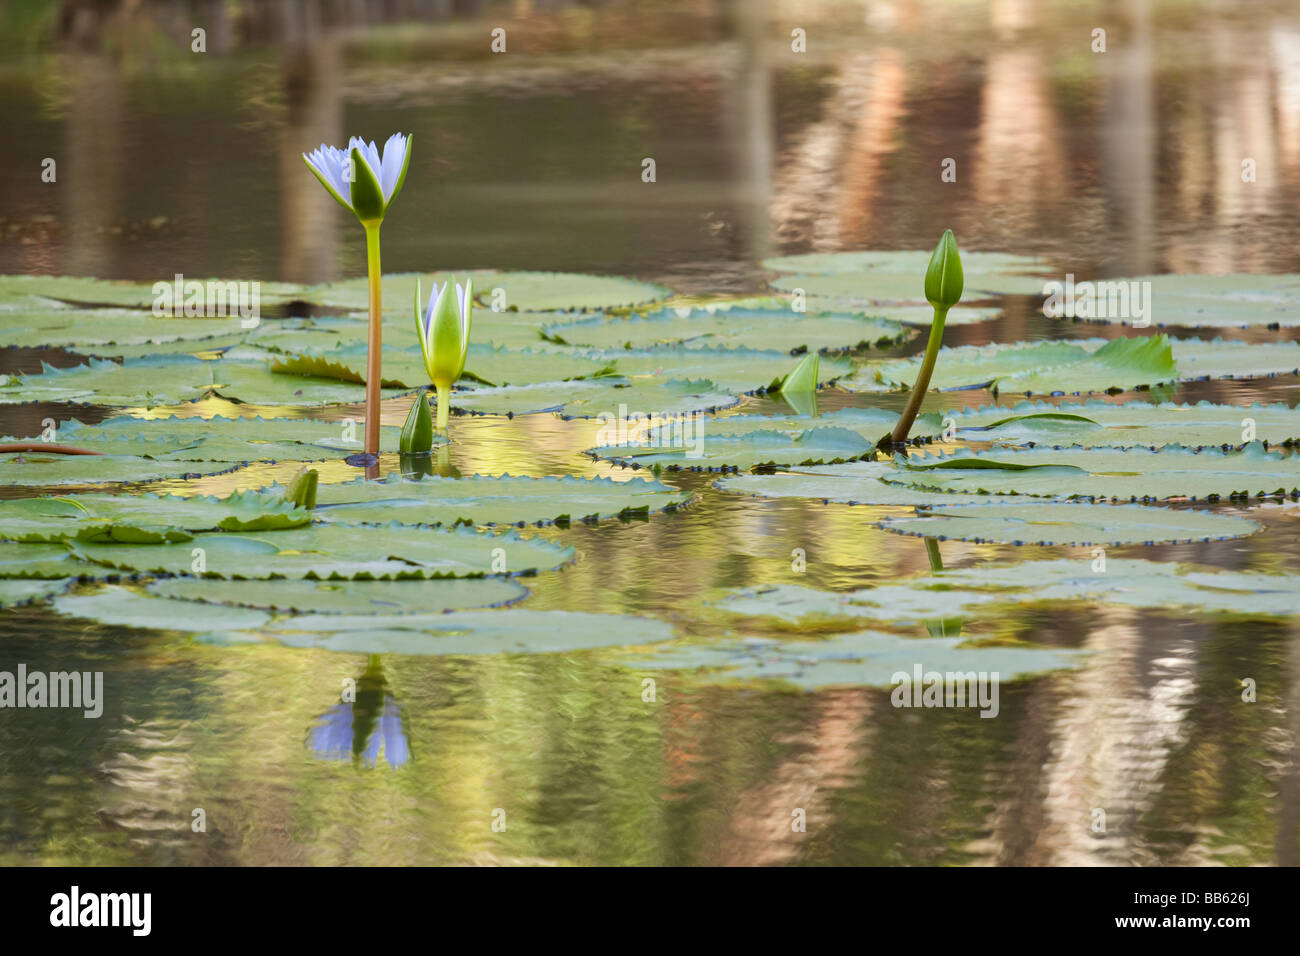 Opening waterlilies with shimmering reflections - Stock Image